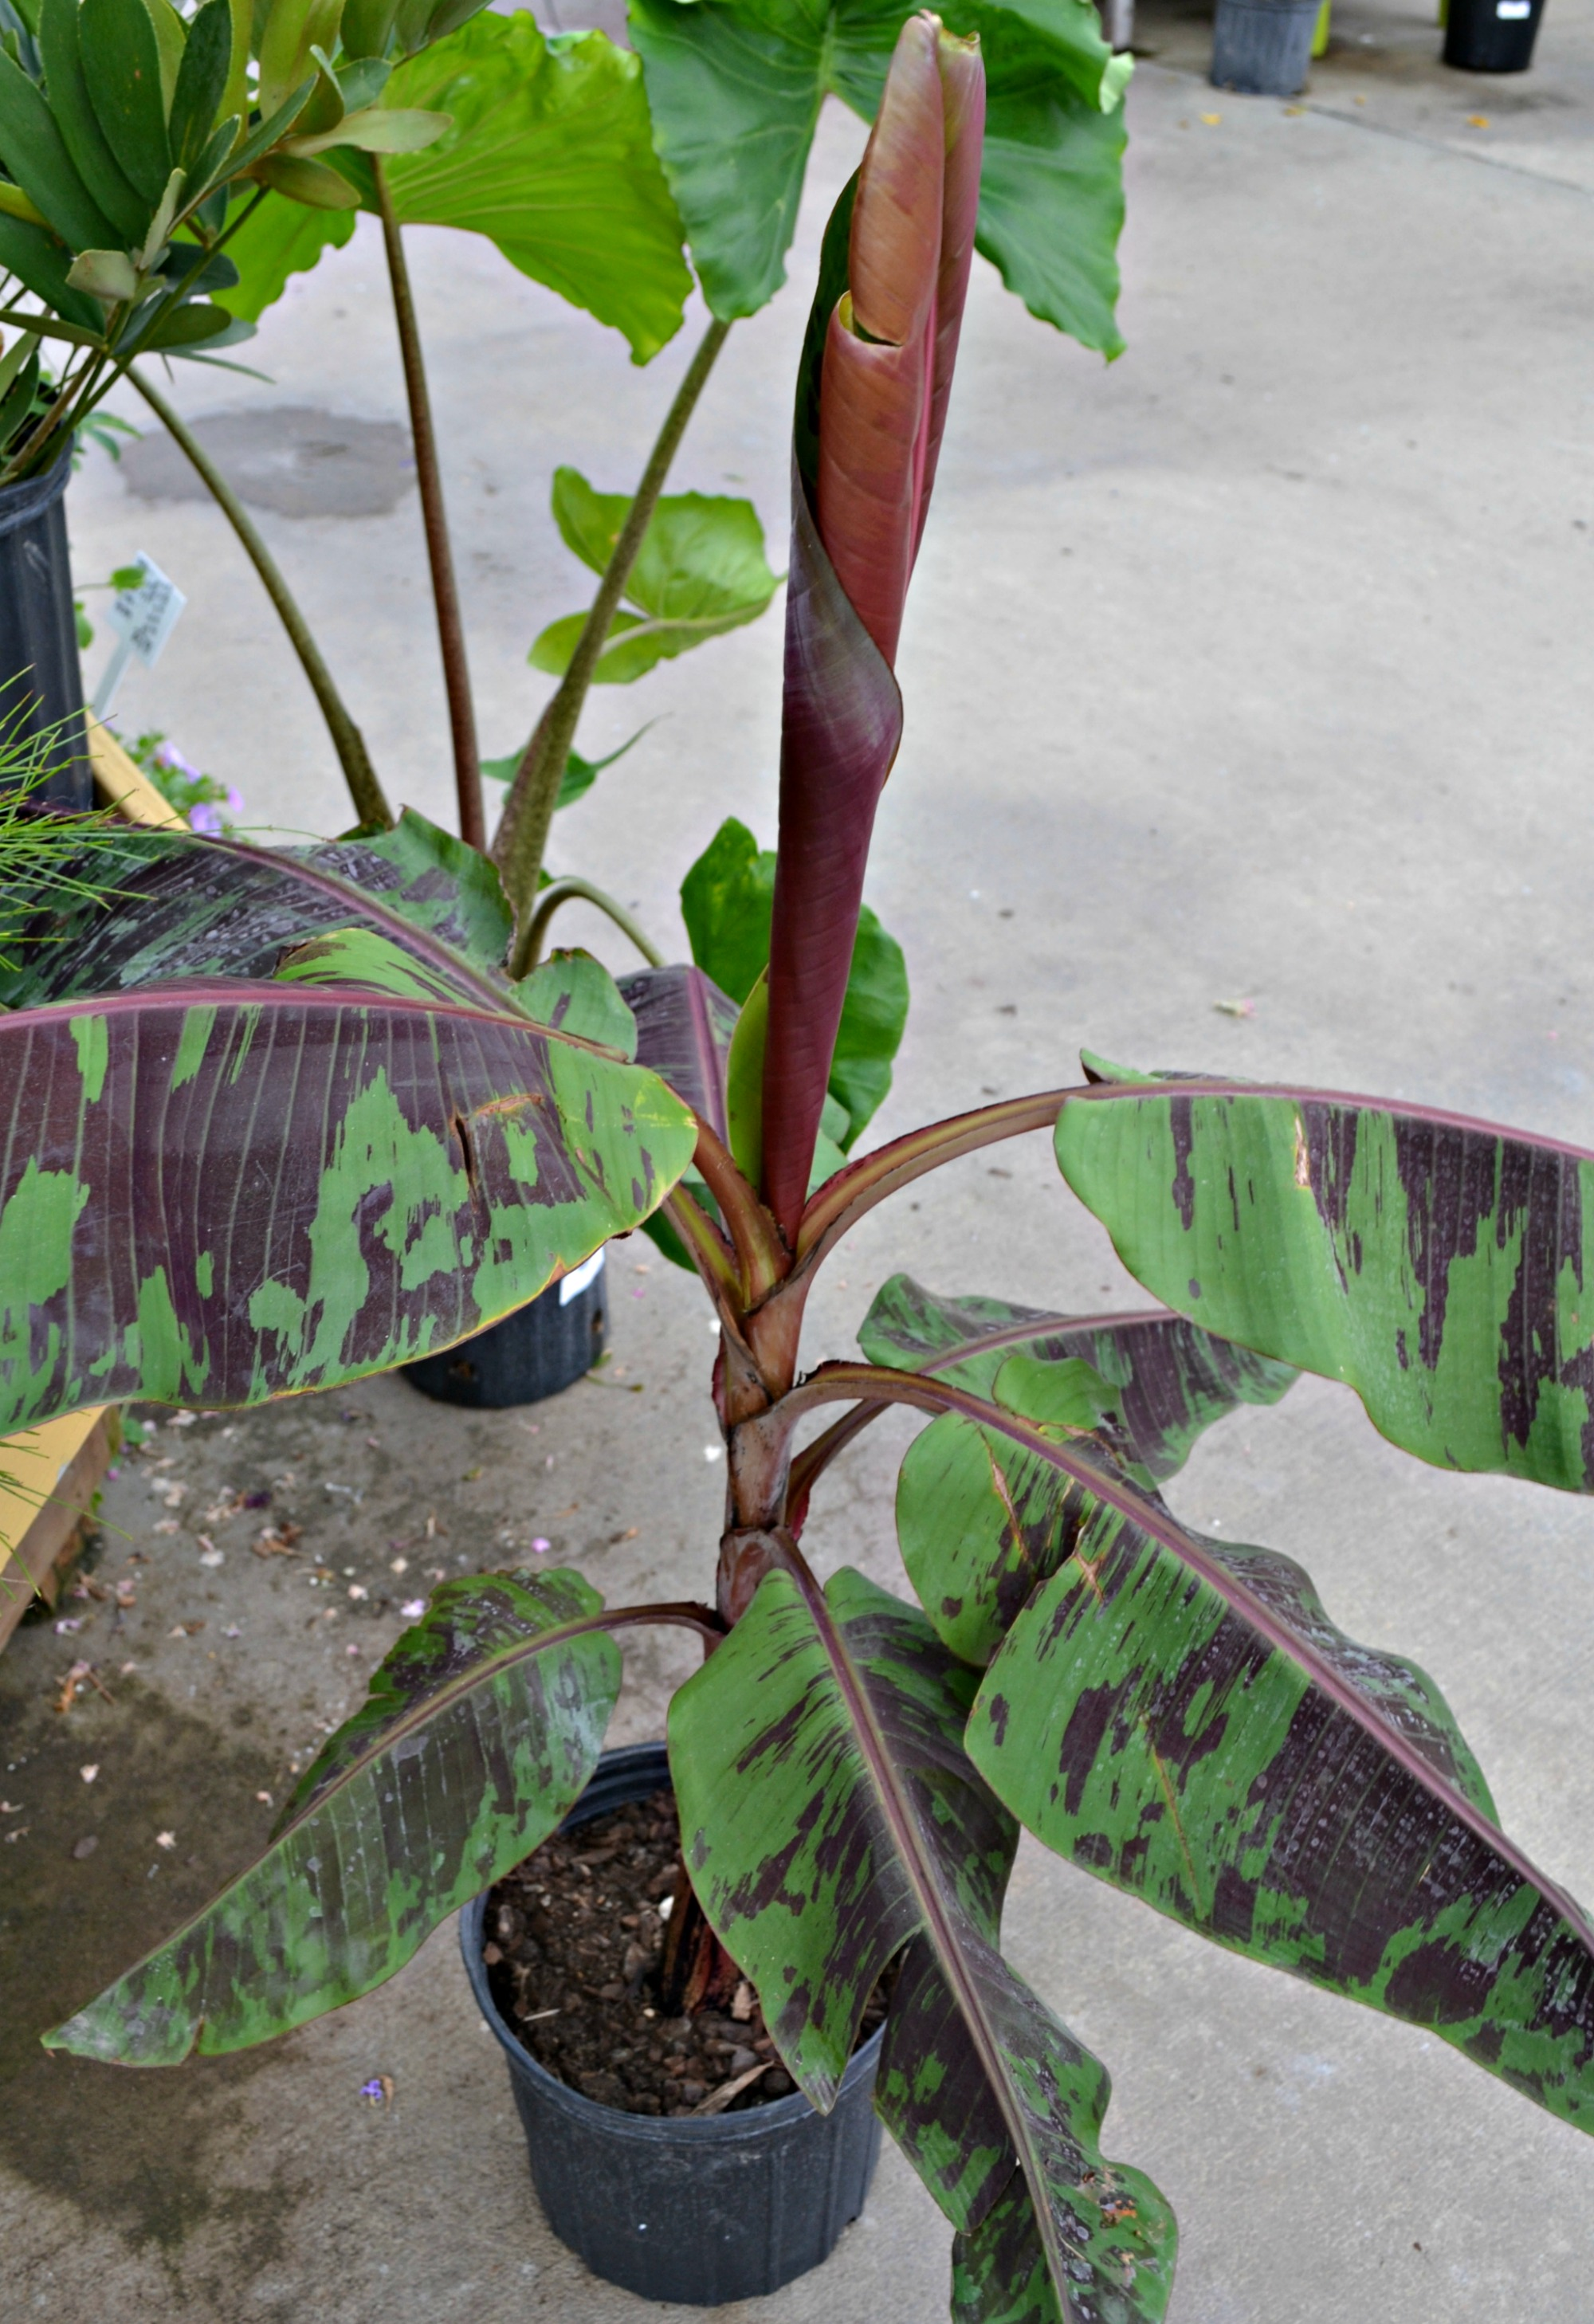 Flowers that like sun and moist soil - Although This Plant Is Considered A Banana Tree It Does Not Flower Or Bear Fruit Like Other Banana Trees It Doesn T Get As Tall As Most Bananas Either